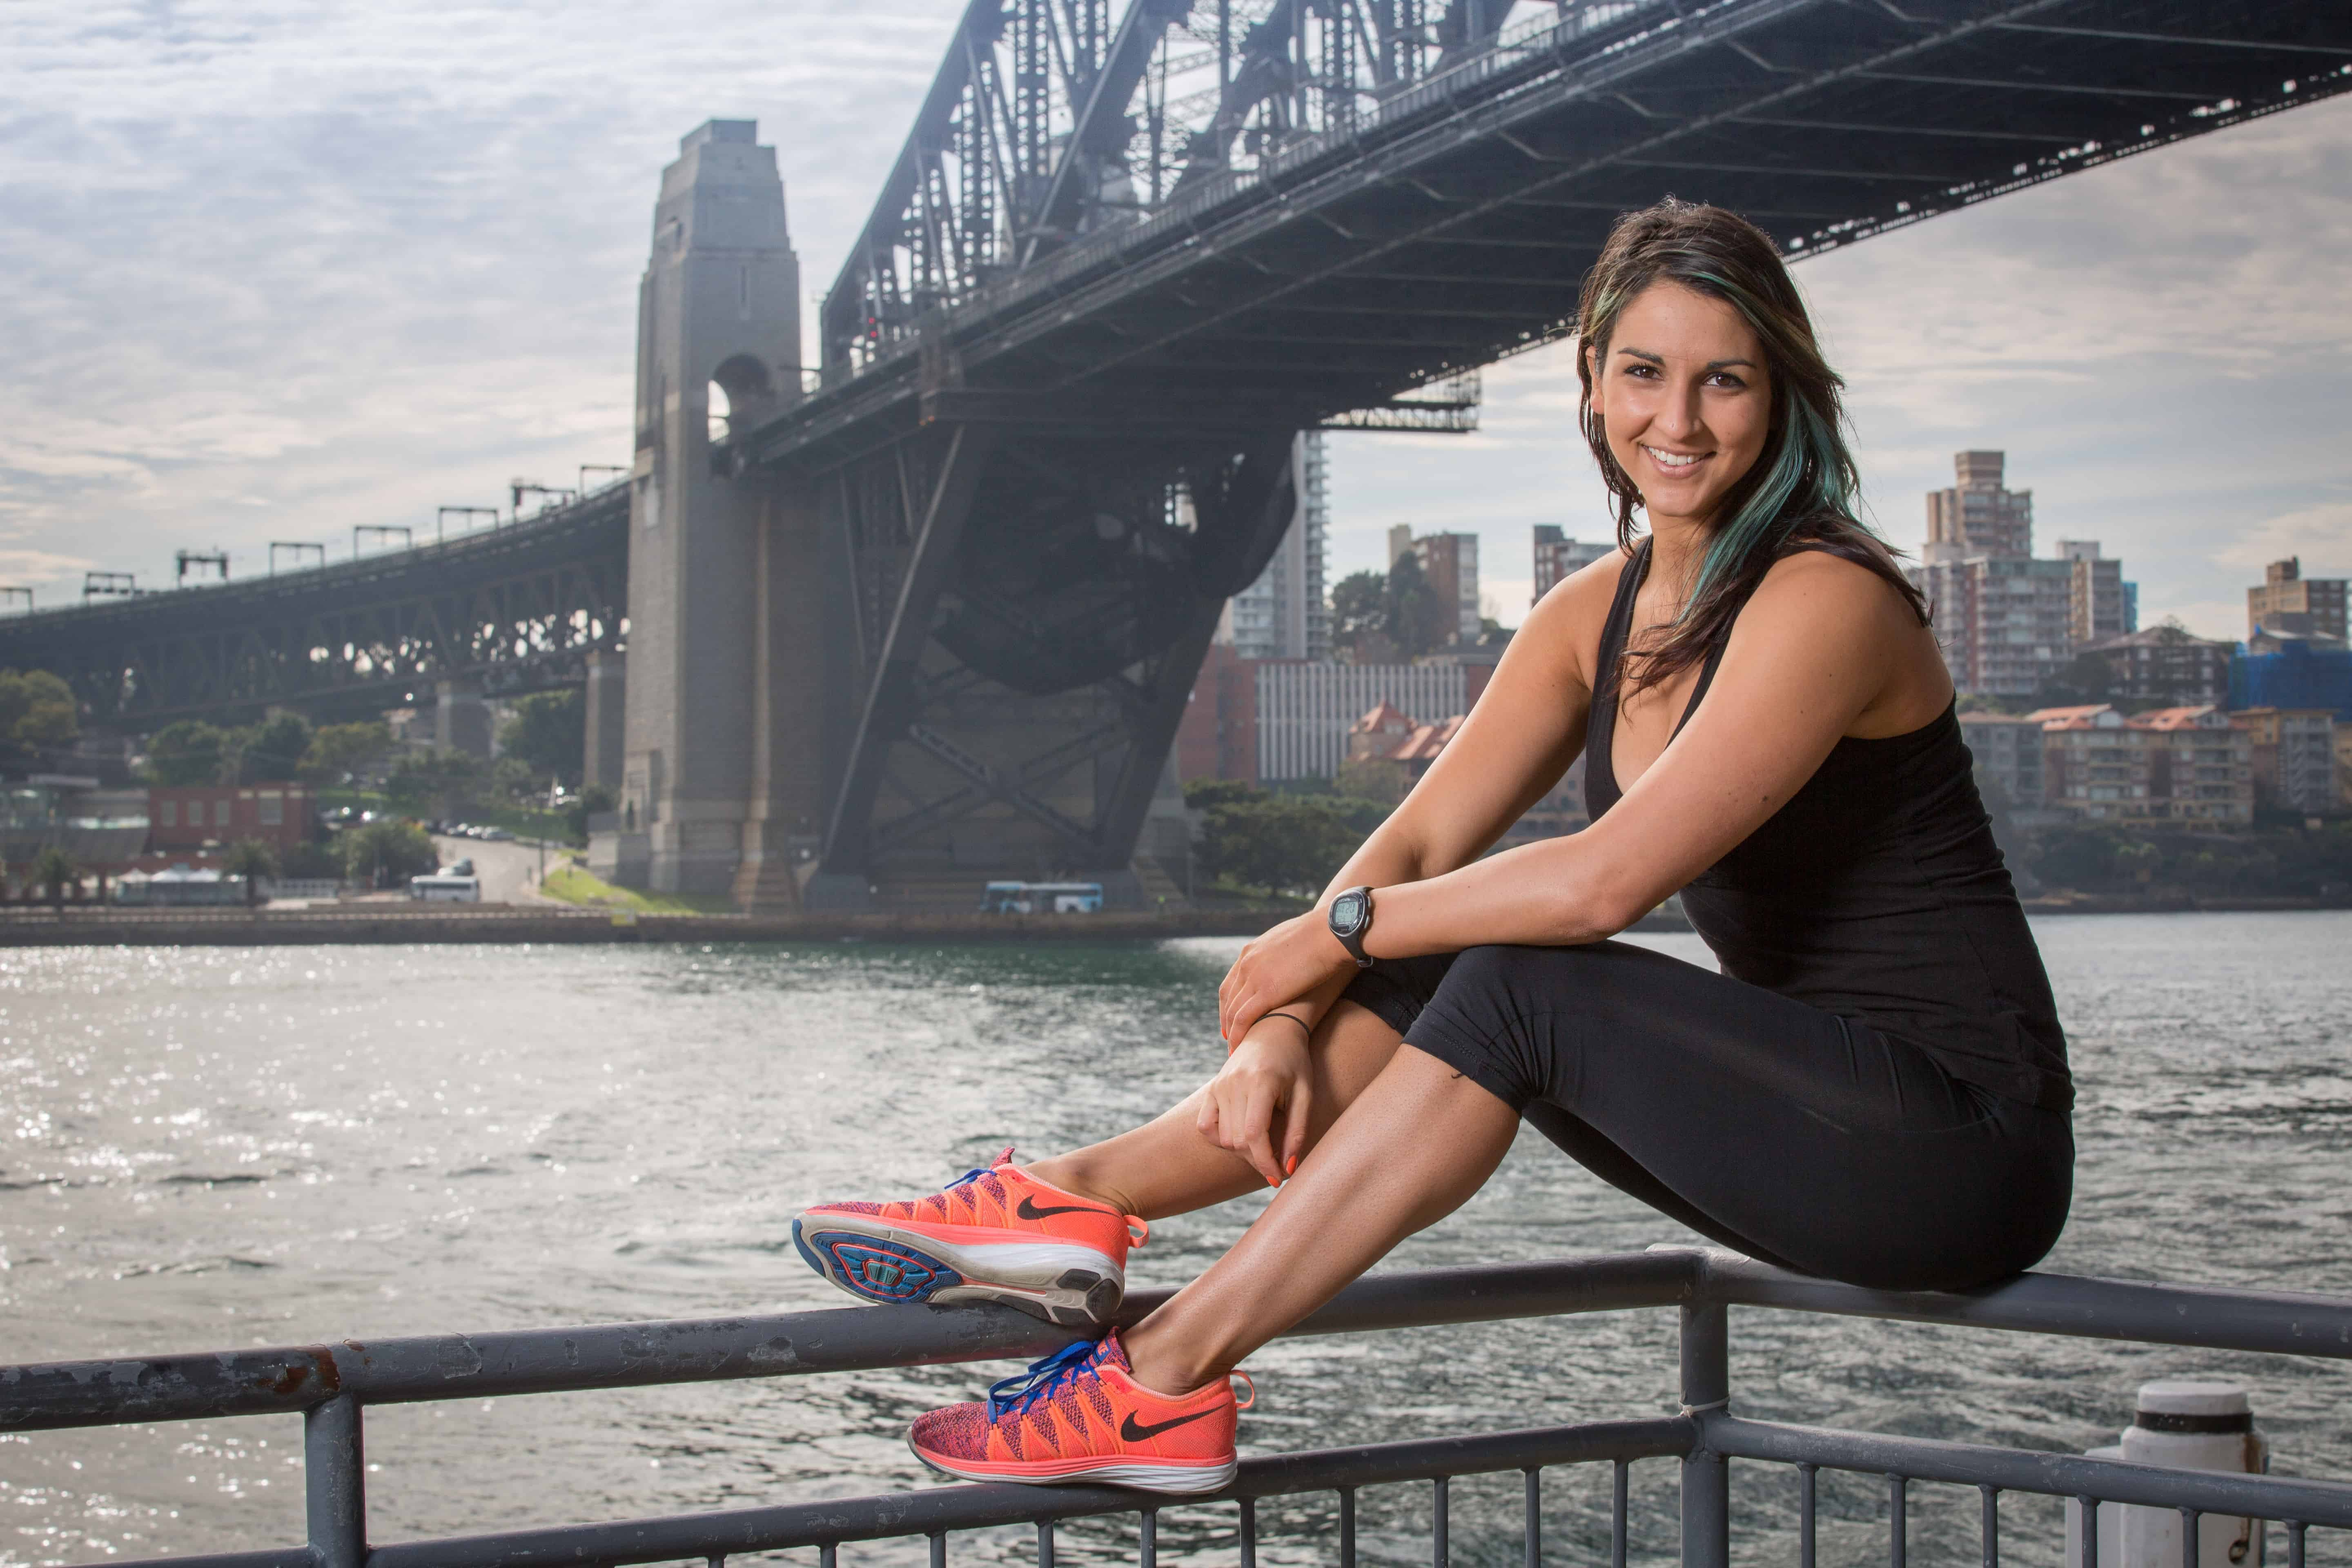 Staying fit & healthy with Kat Yiannakis 36